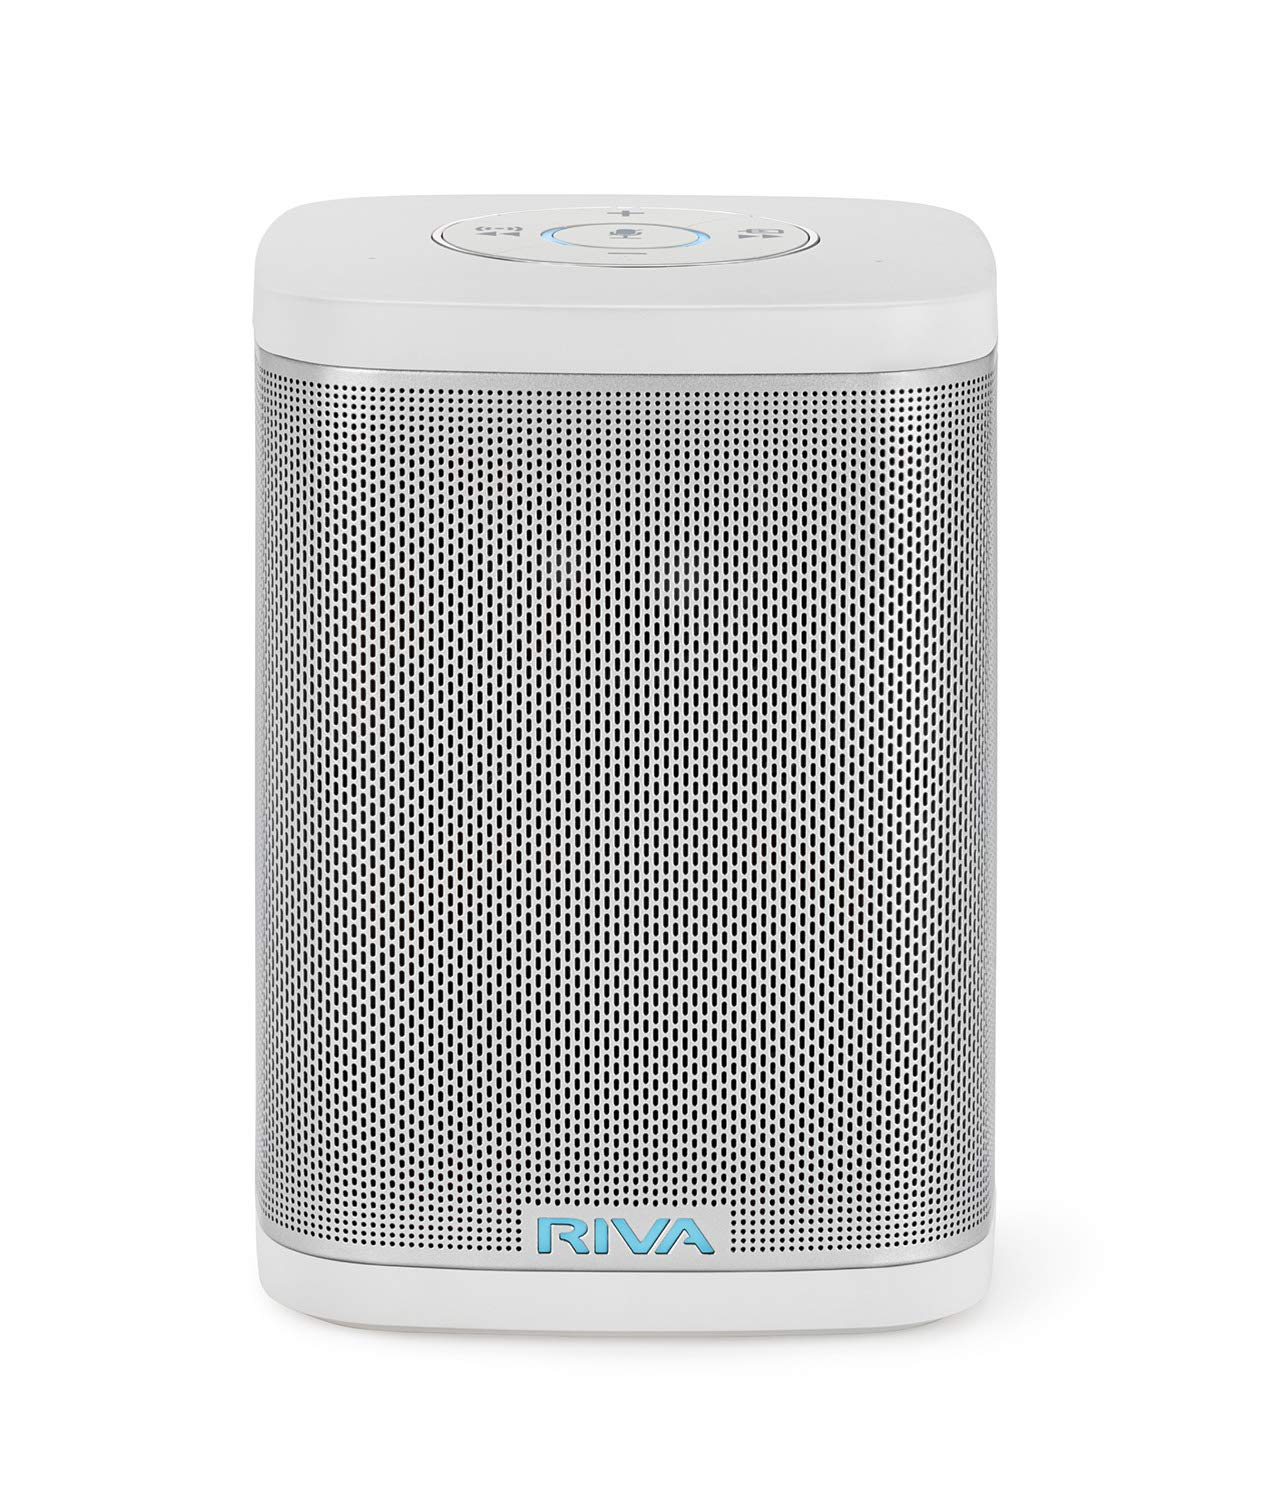 RIVA Concert with Alexa Built-in Wireless Smart Speaker